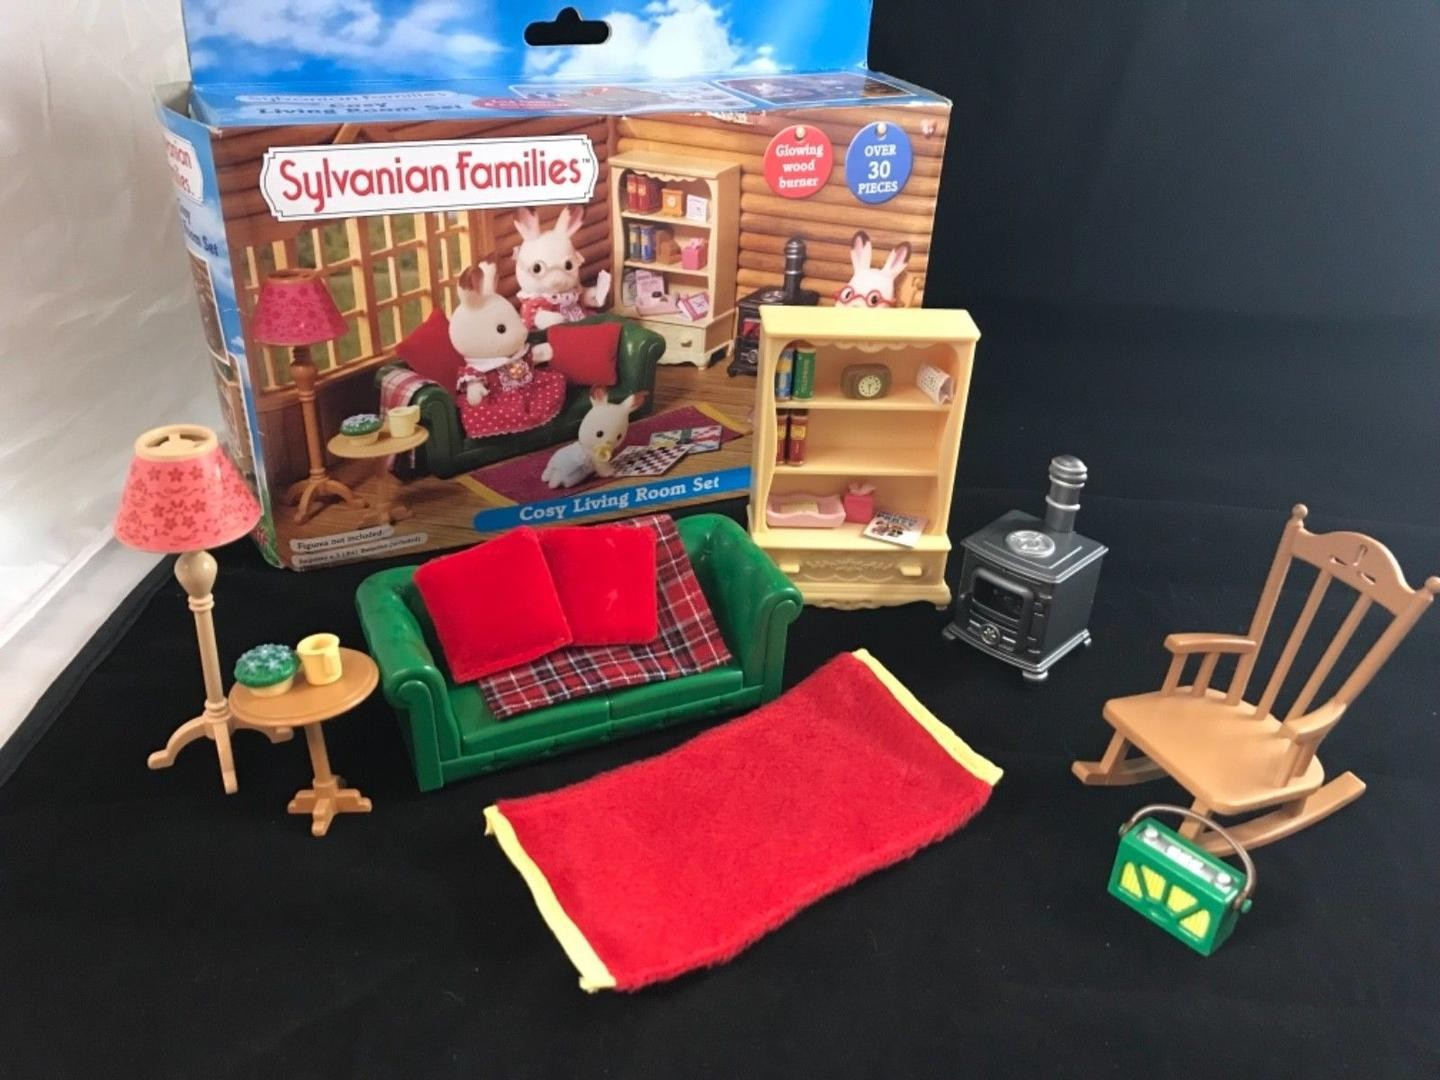 Calico Critters Sylvanian Families Cosy Living Room Set Rare Very intended for Sylvanian Families Cosy Living Room Set